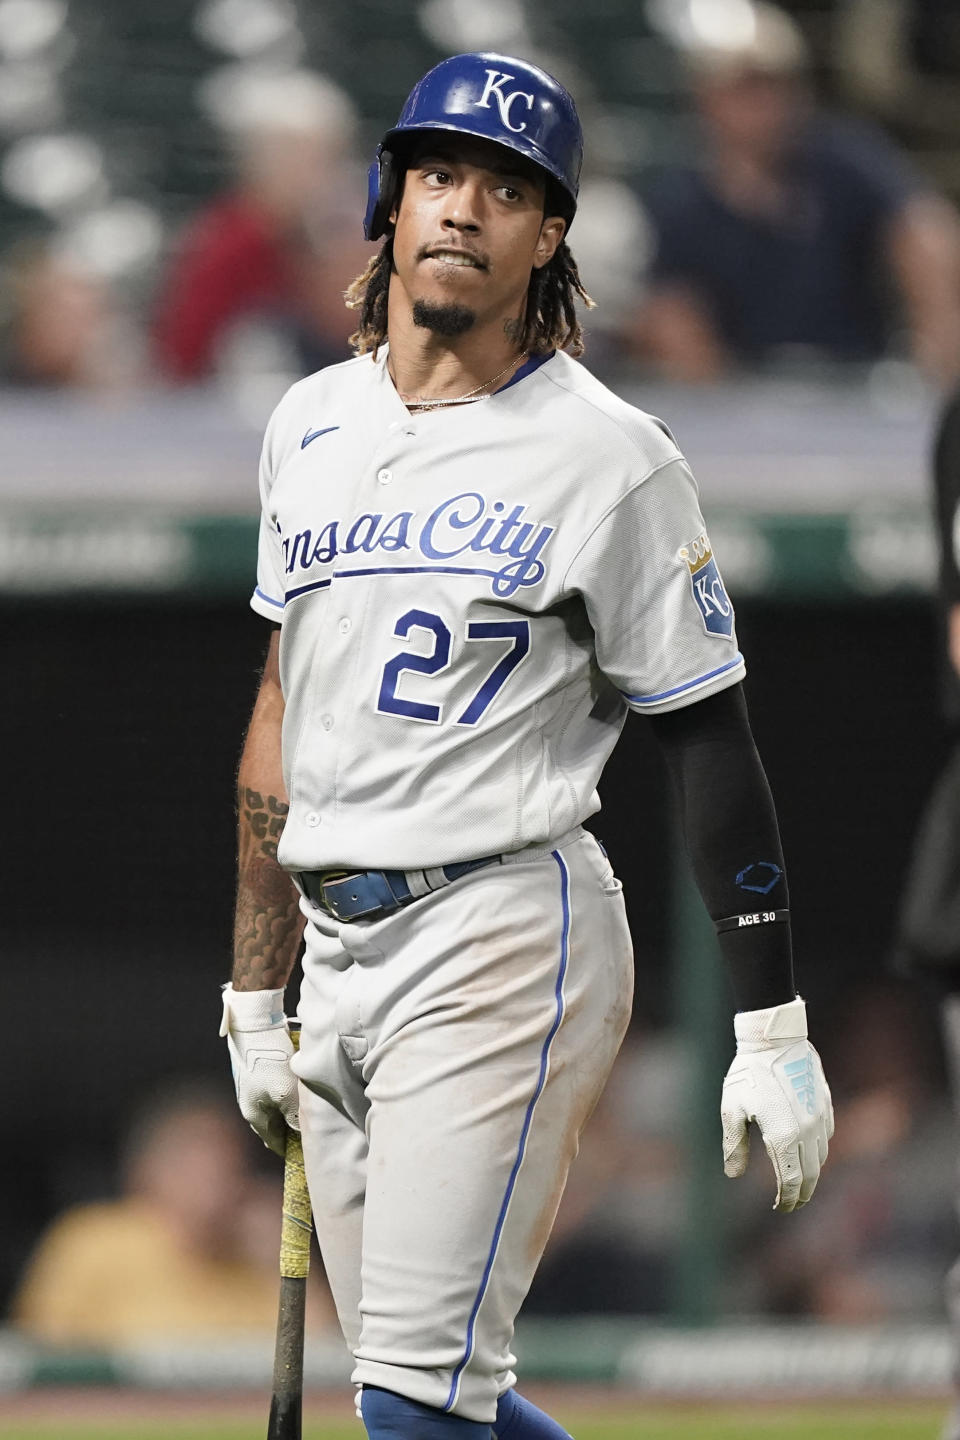 Kansas City Royals' Adalberto Mondesi reacts after striking out in the ninth inning of a baseball game against the Cleveland Indians, Tuesday, Sept. 21, 2021, in Cleveland. The Indians won 4-1. (AP Photo/Tony Dejak)